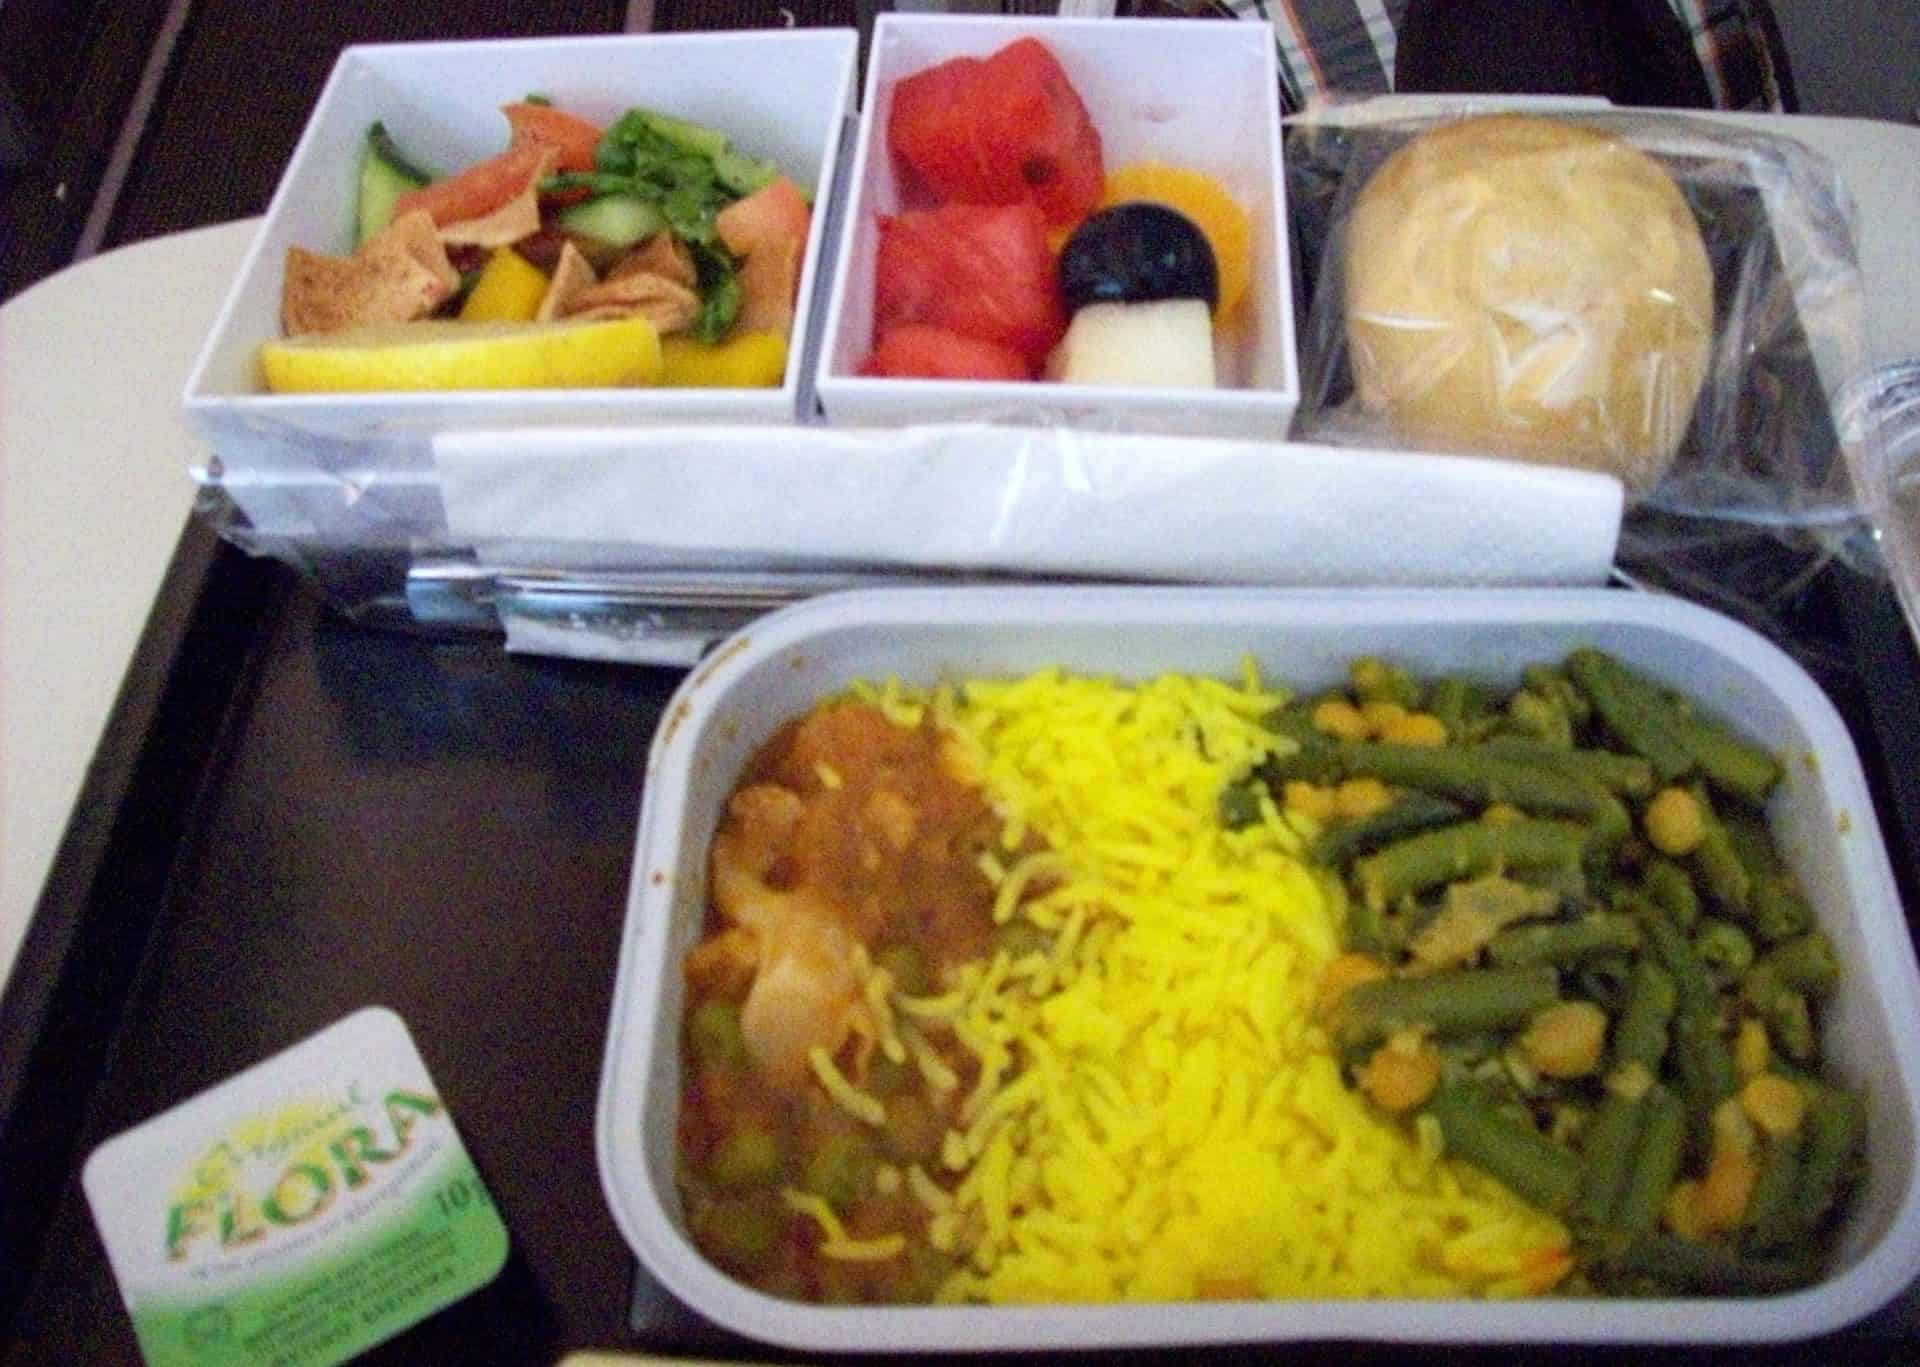 Best Airlines for Vegan Food